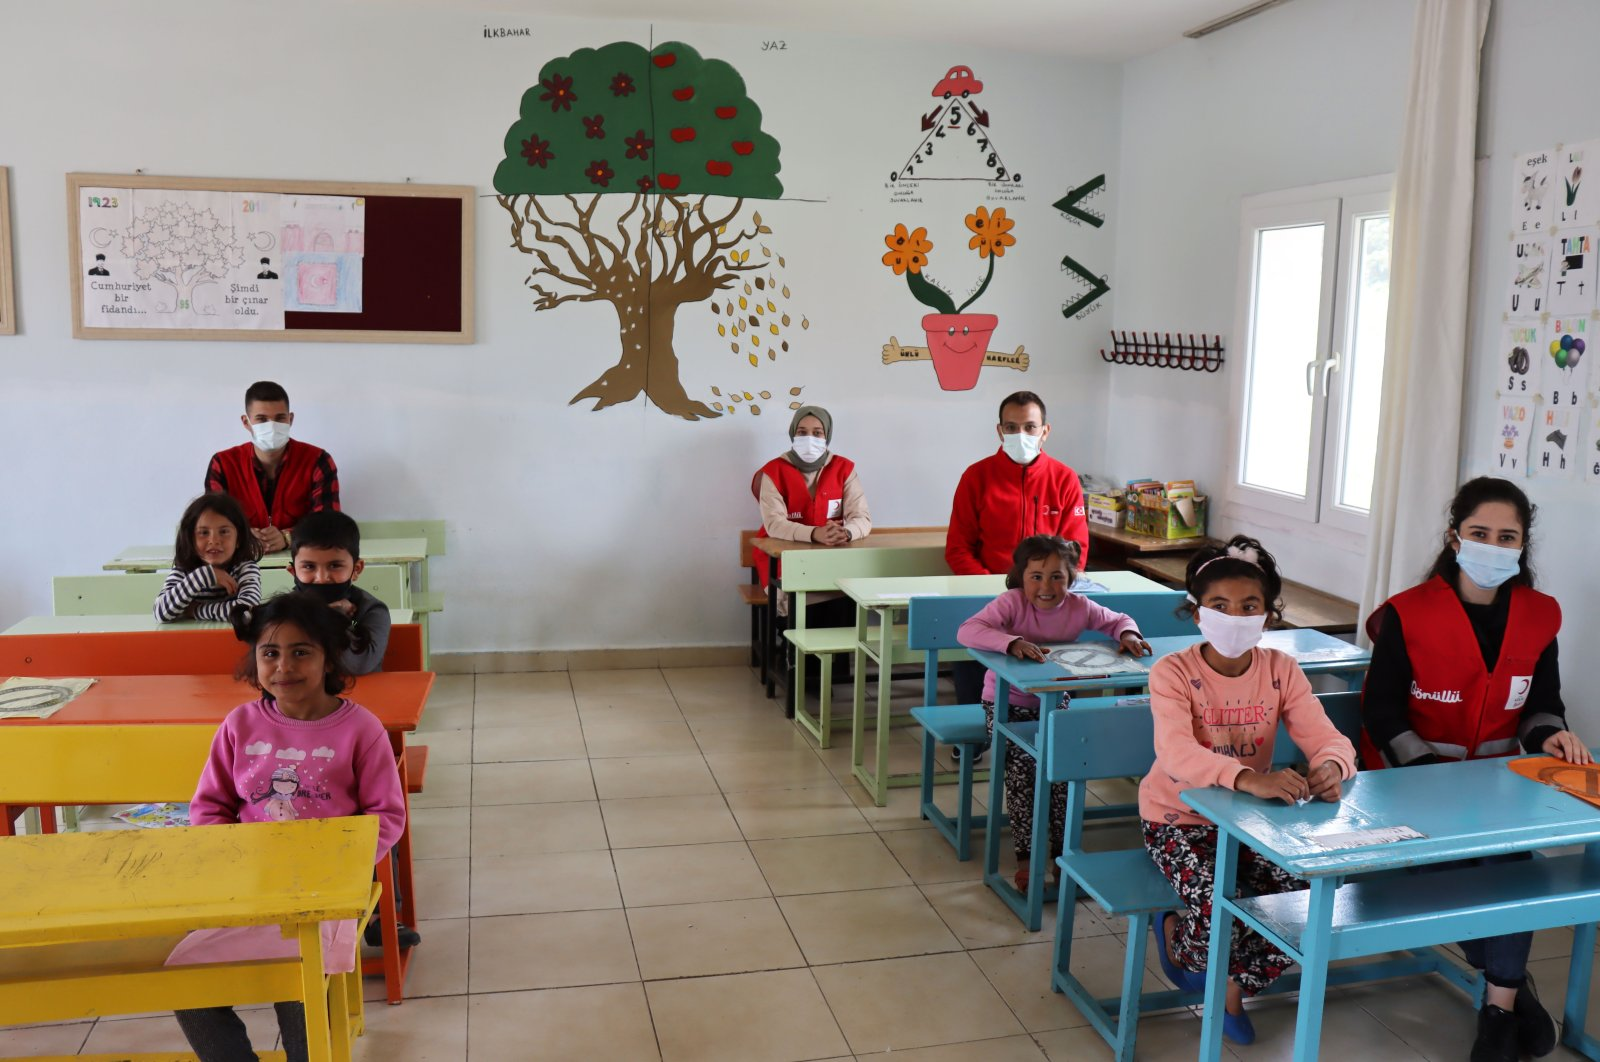 Turkish Red Crescent volunteers and children sit in a classroom in a freshly-painted school in Polatlı village near the Syrian border, Kilis, April 9, 2021. (AA)